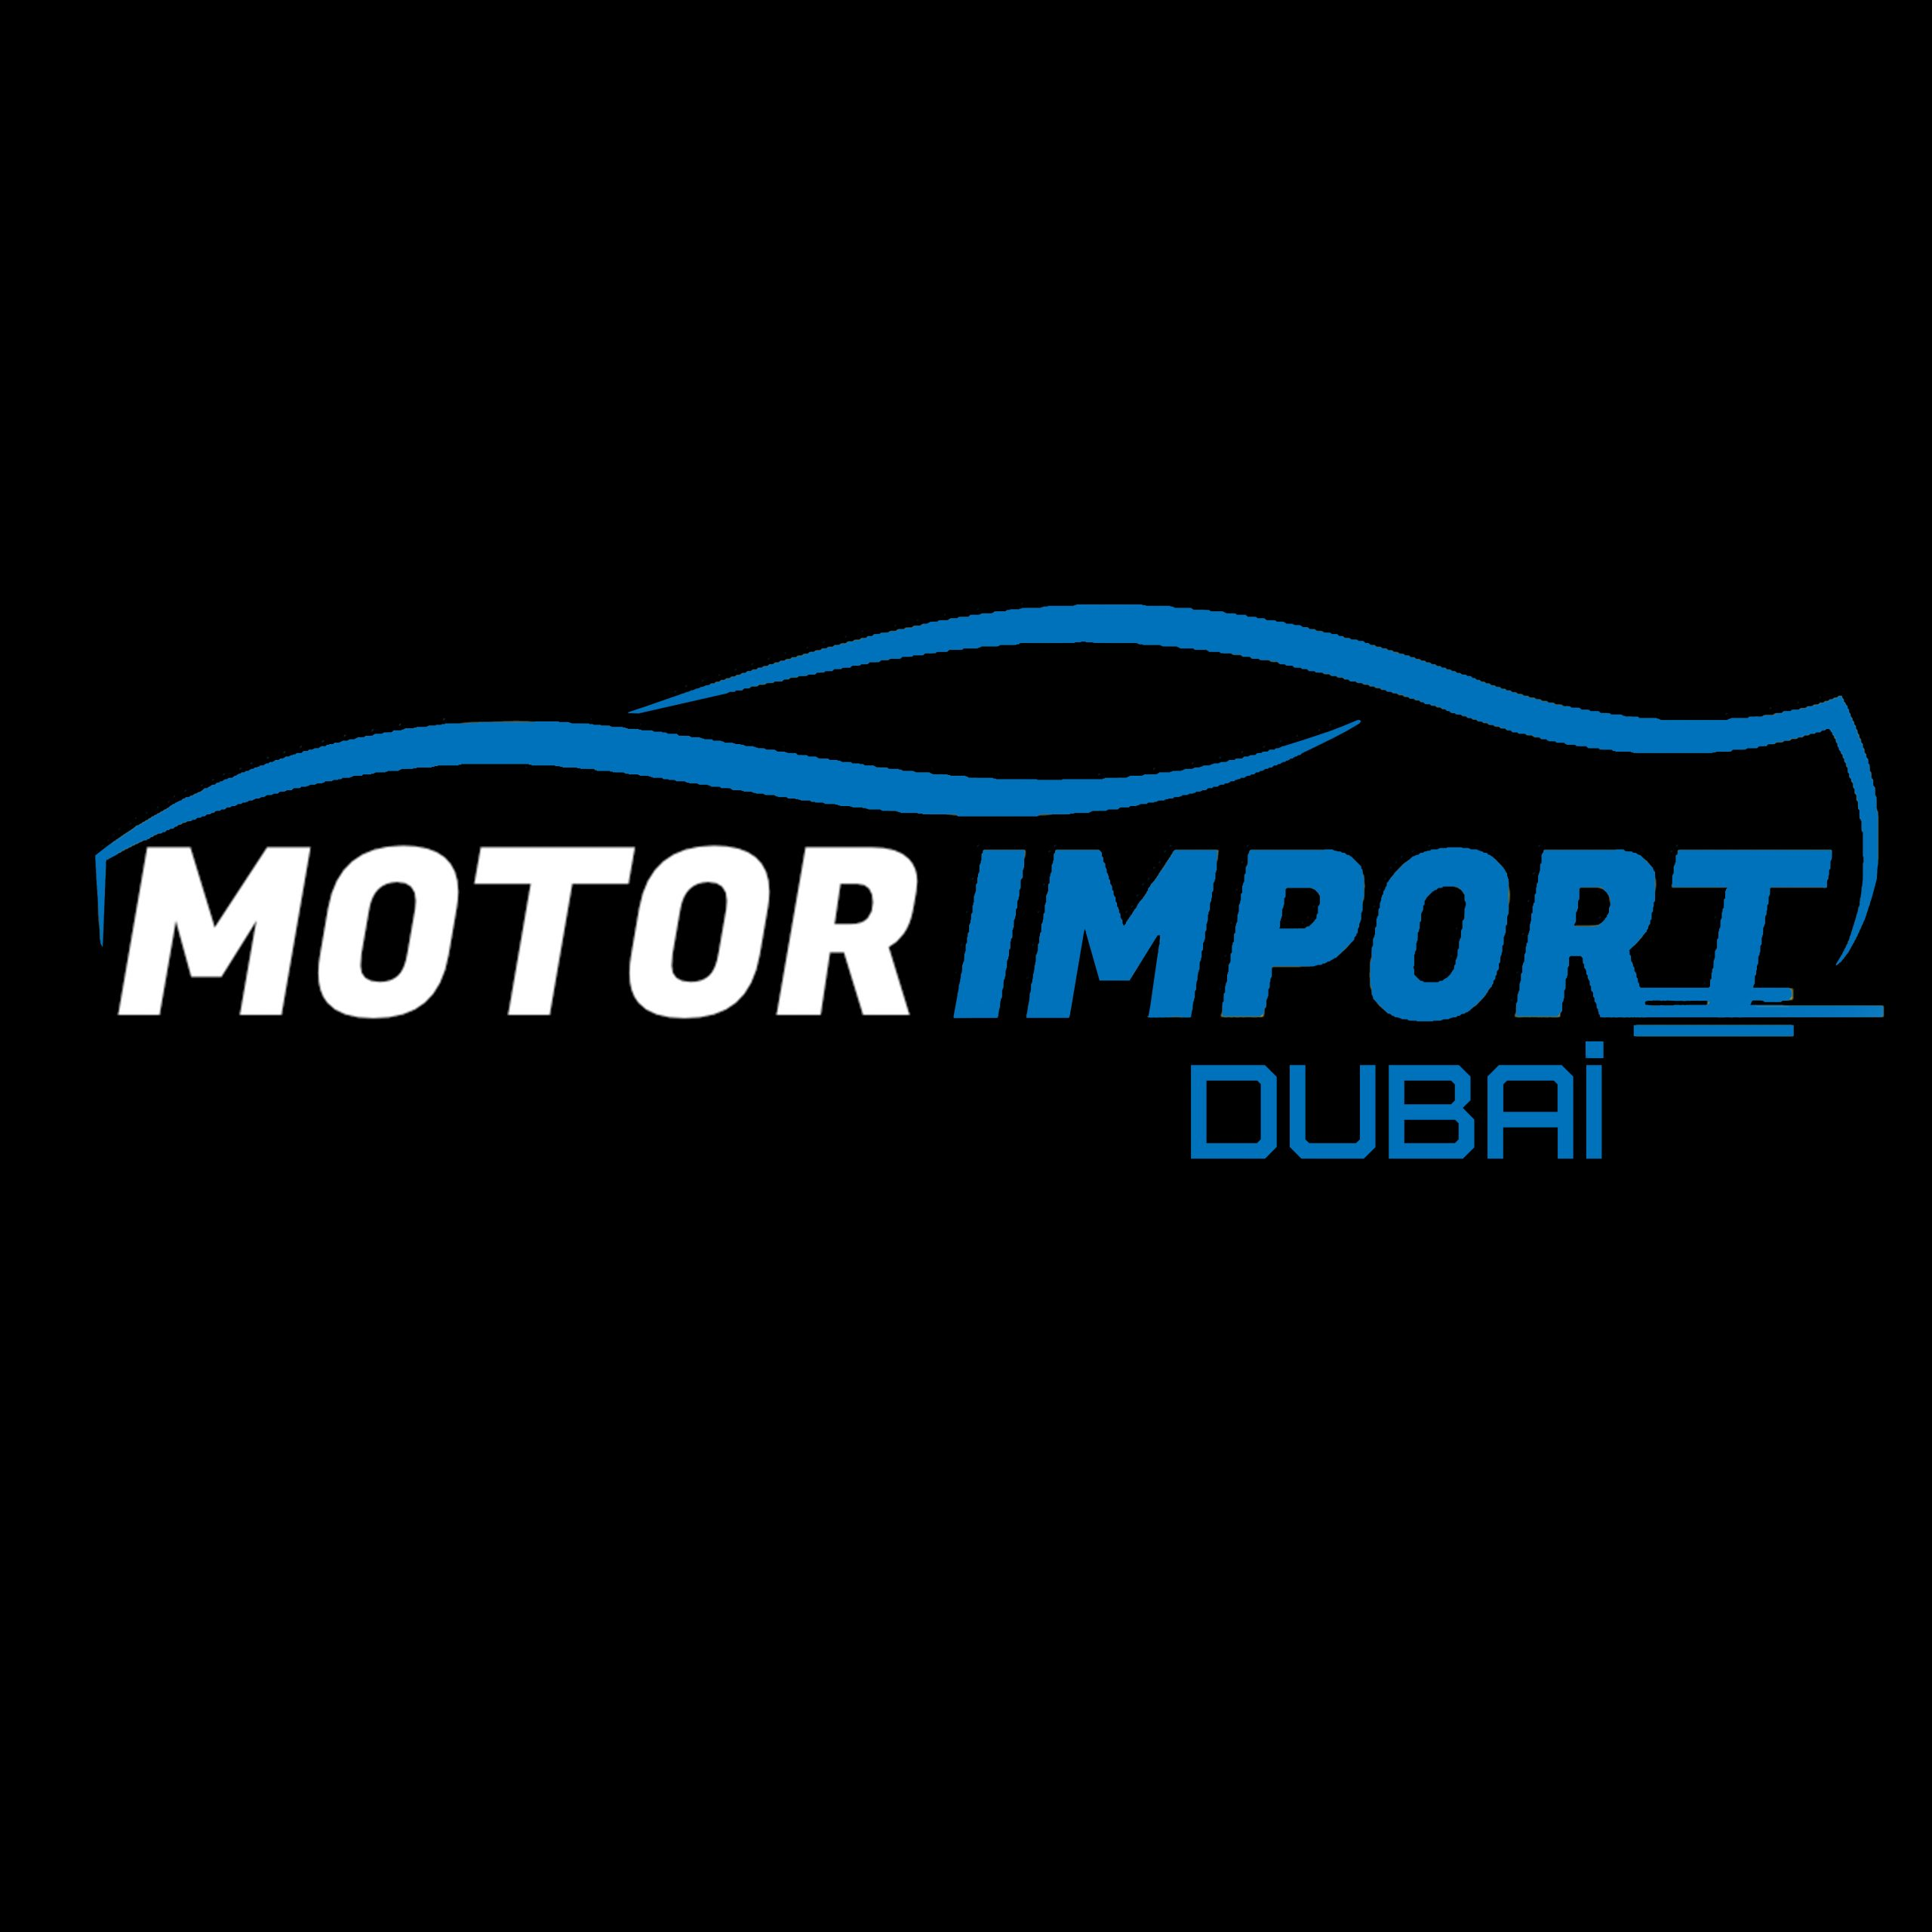 SQUARE EMPTYMOTOR IMPORT DUBAI scaled - OPEL DUBAI importation voiture Dubai OPEL importation vehicule emirats arabe unis motorimport